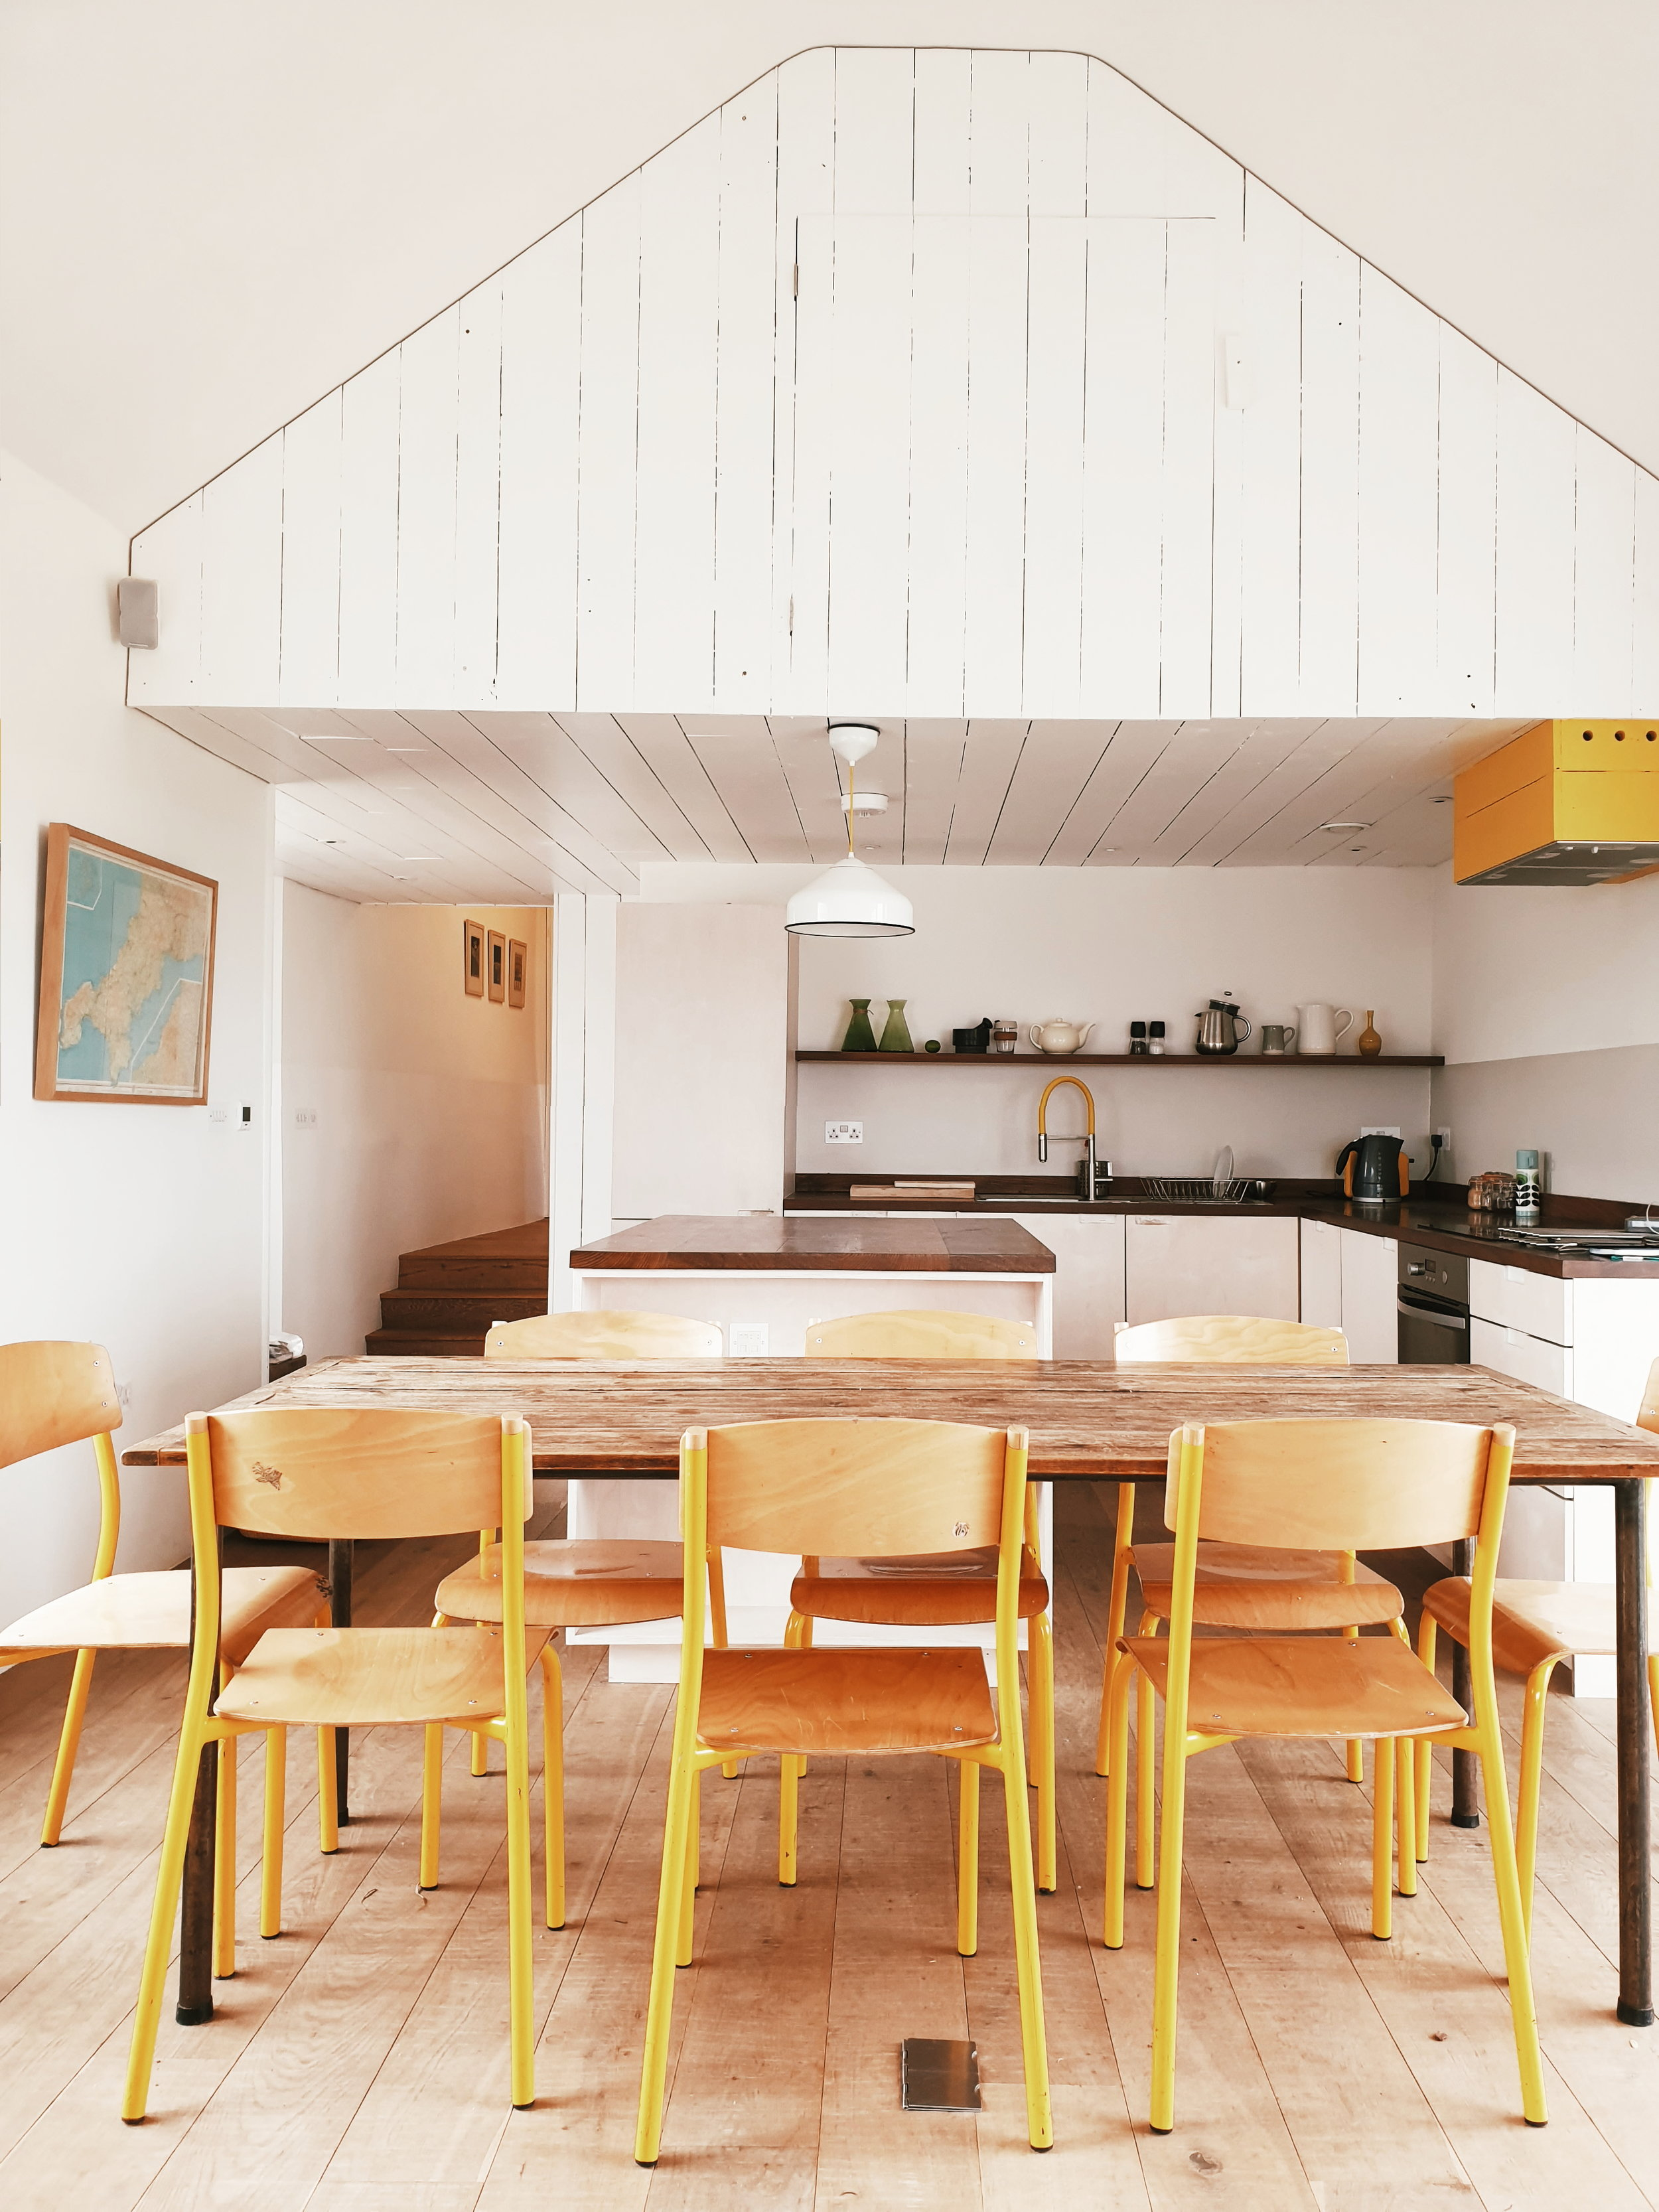 My kitchen for the week was this converted barn in Cornwall